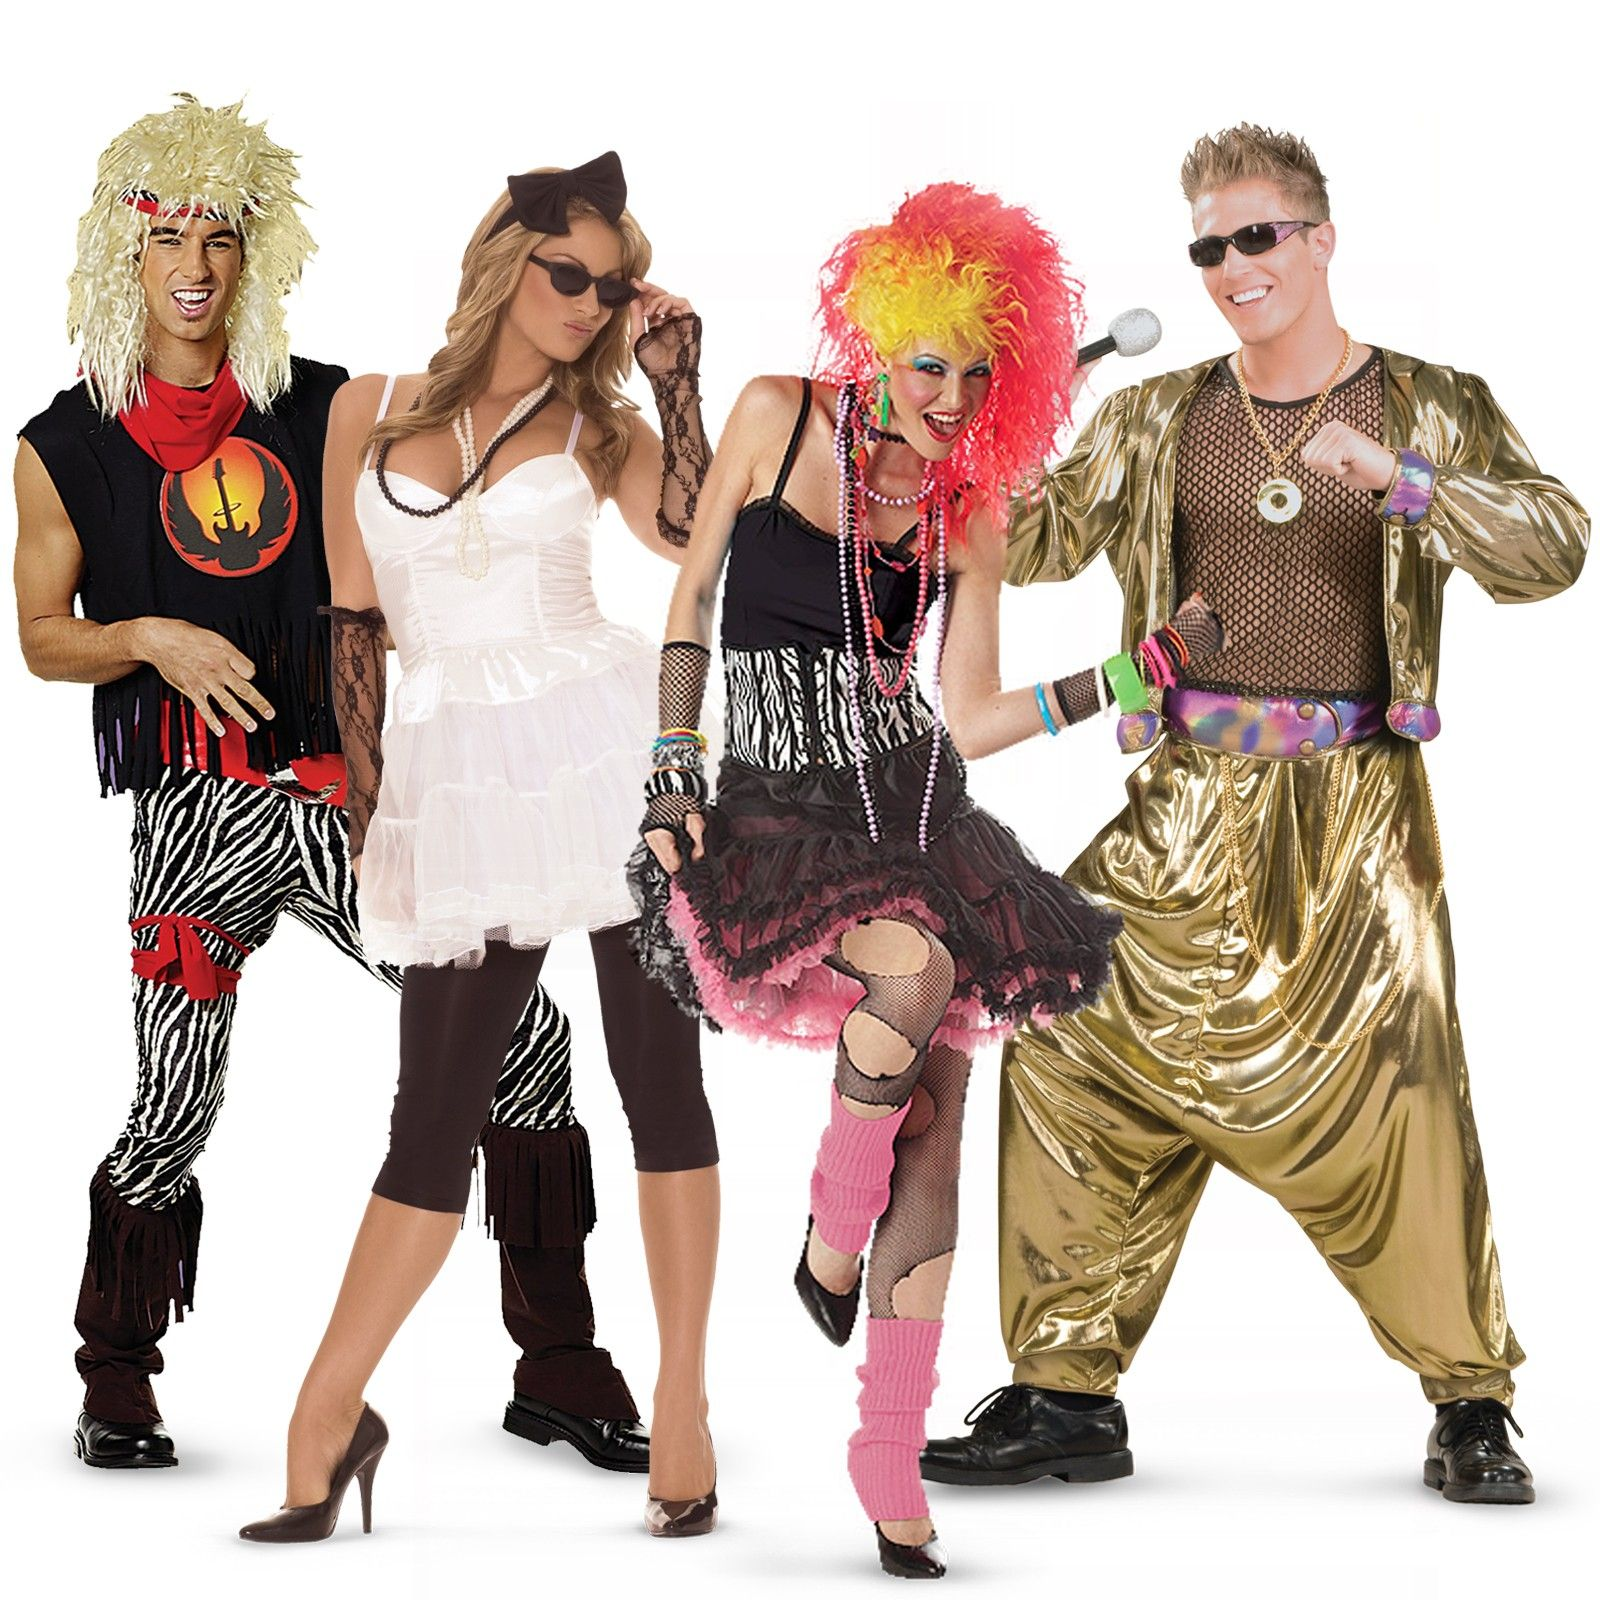 80s rockstars group costumes | 80s prom bday party | pinterest